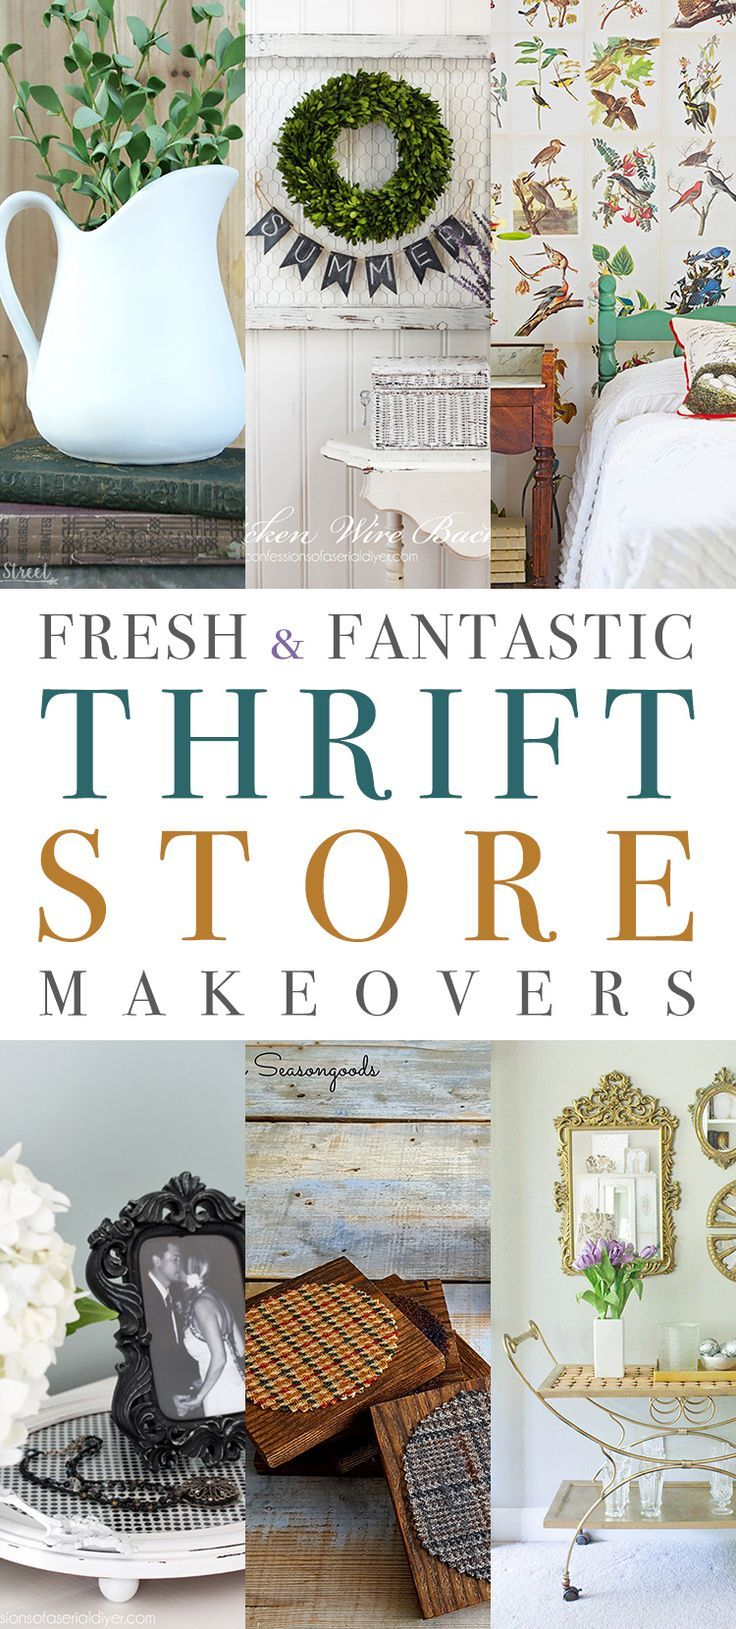 10 Fresh and Fantastic Thrift Store Makeovers